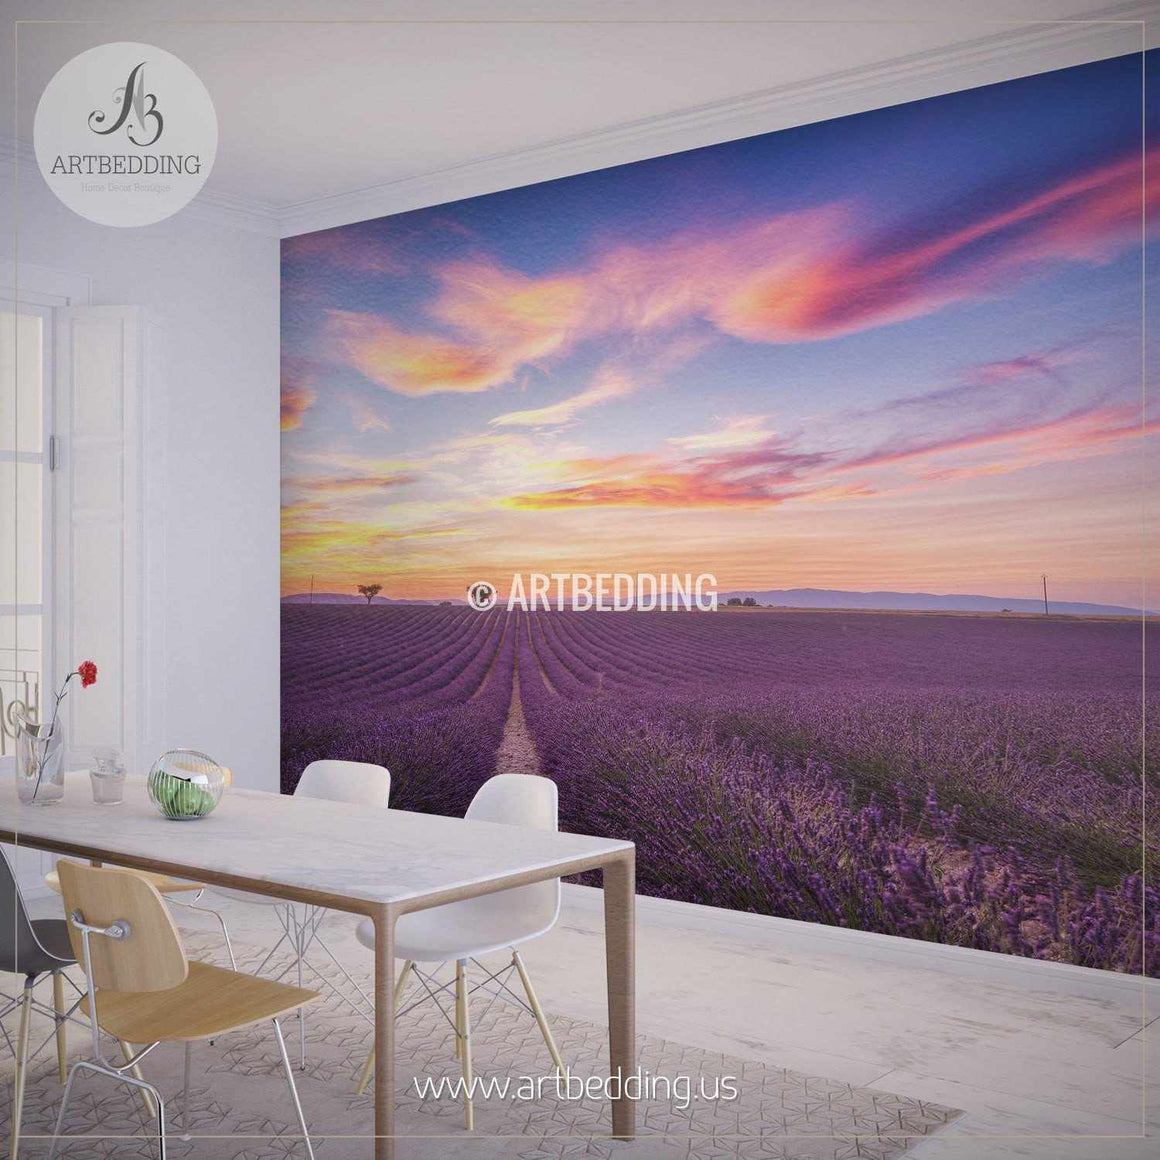 Lavender Field Summer Sunset Landscape Wall Mural, Photo mural Self Adhesive Peel & Stick, wall mural wall mural